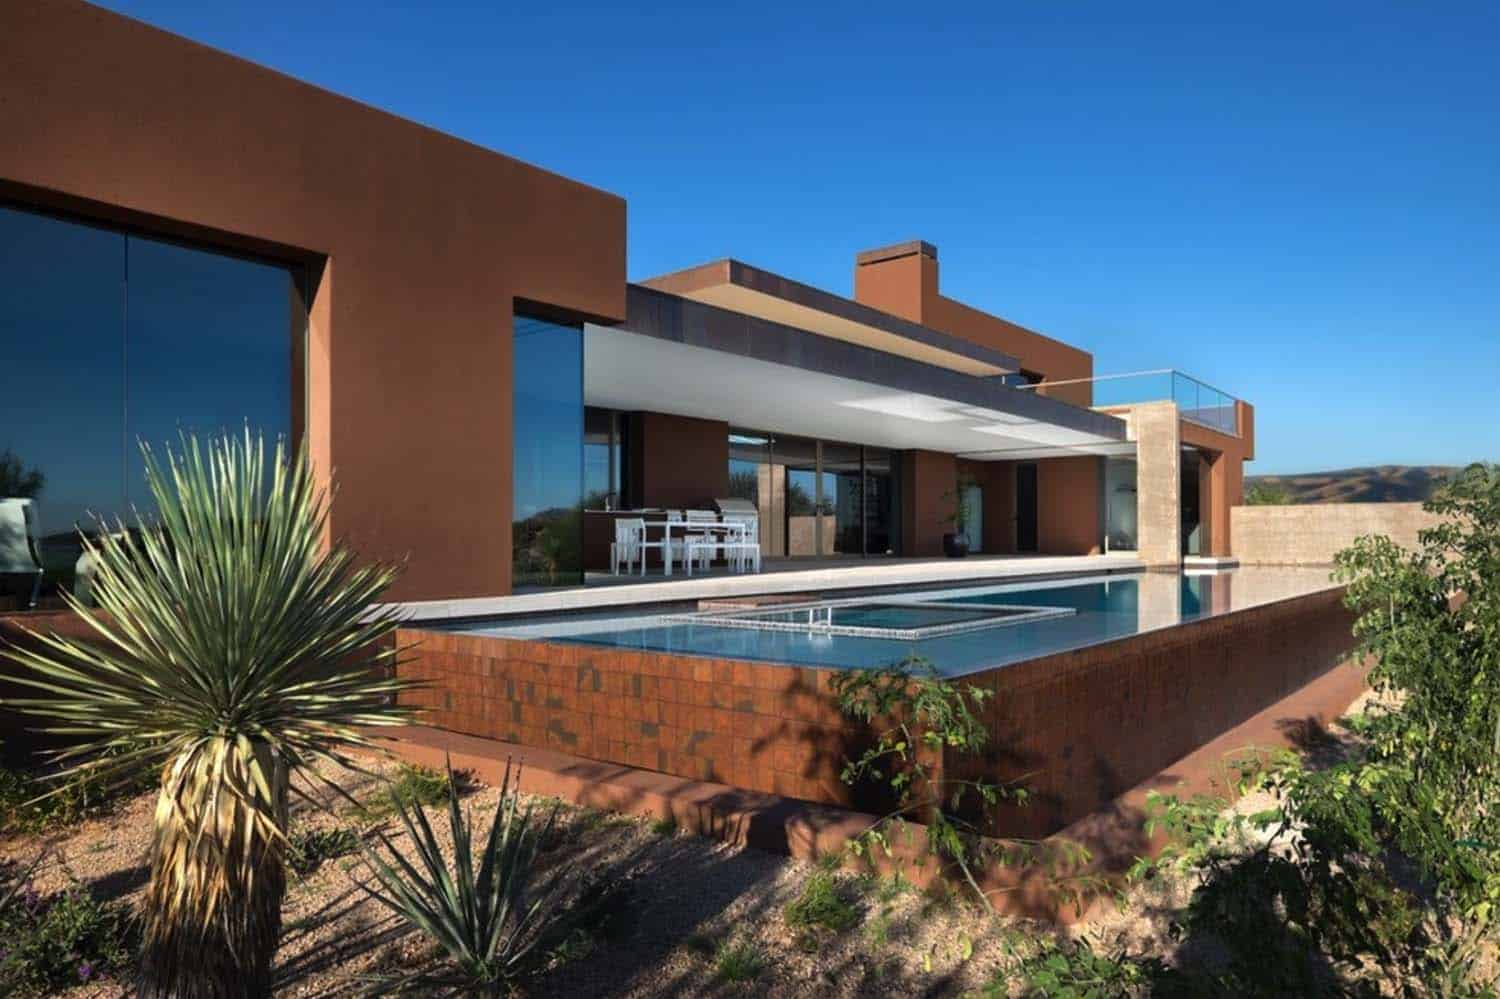 Contemporary Desert Home-Tate Studio Architects-22-1 Kindesign